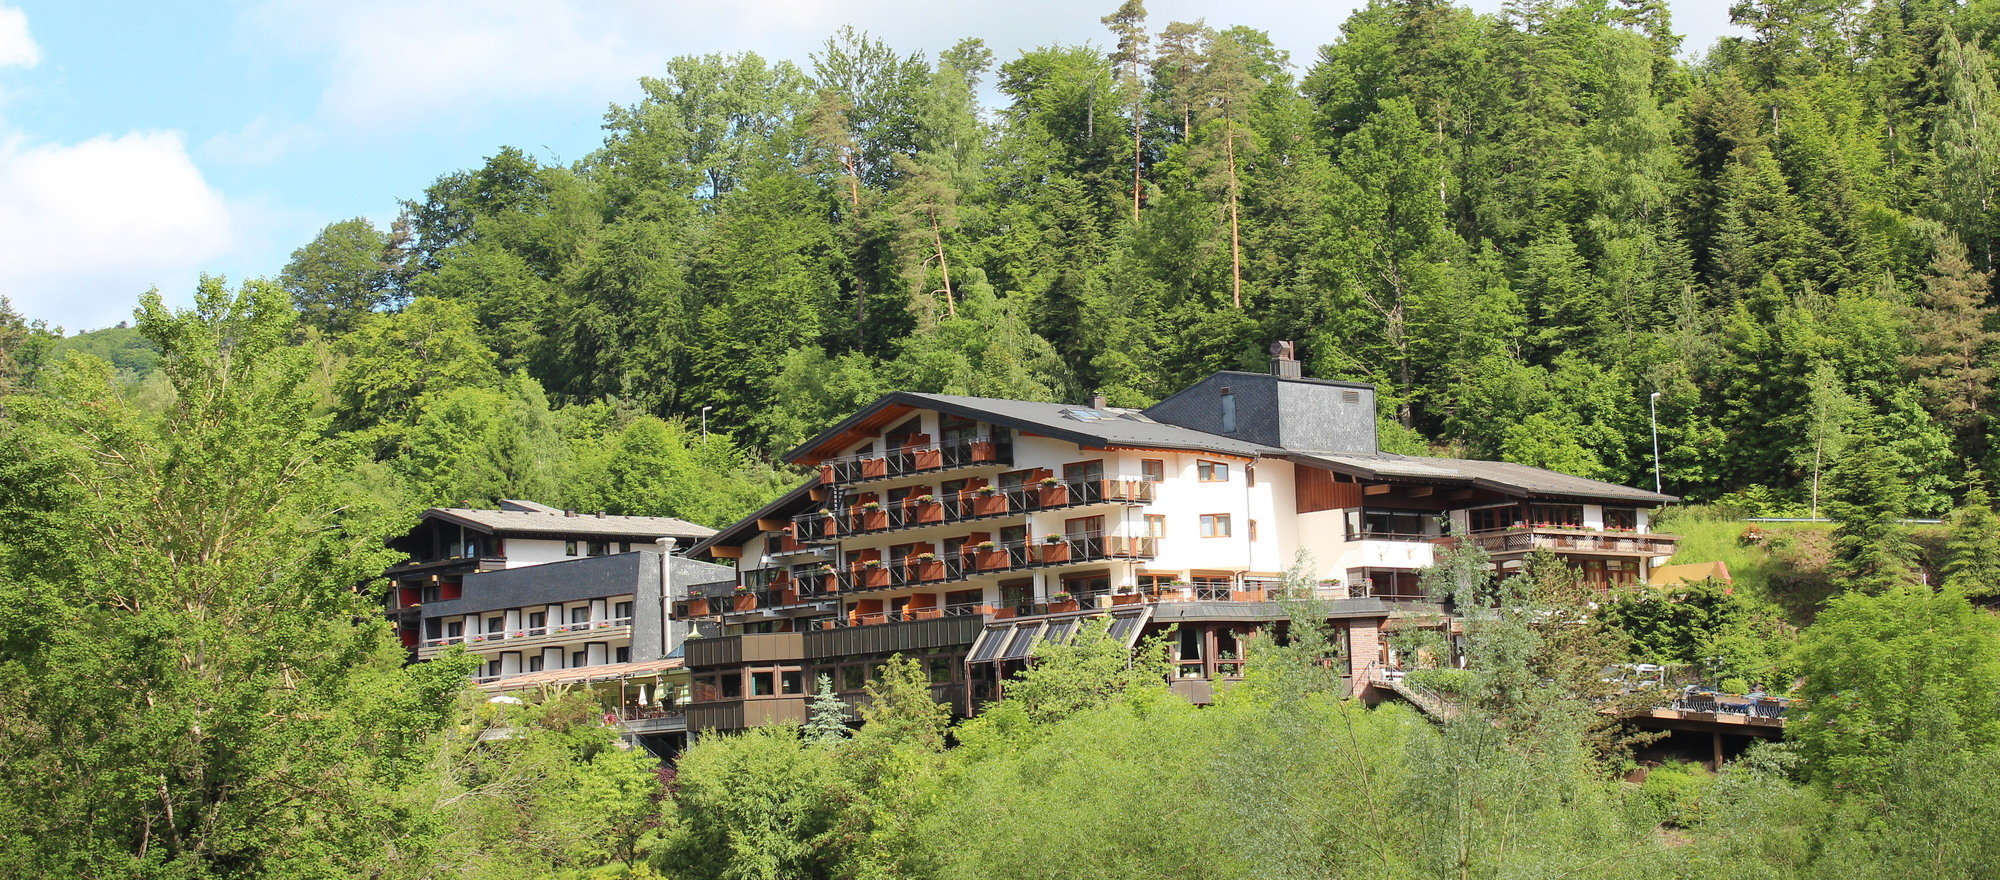 The 4-star Ringhotel Moenchs Waldhotel in Unterreichenbac is situated in the holiday region North Black Forest